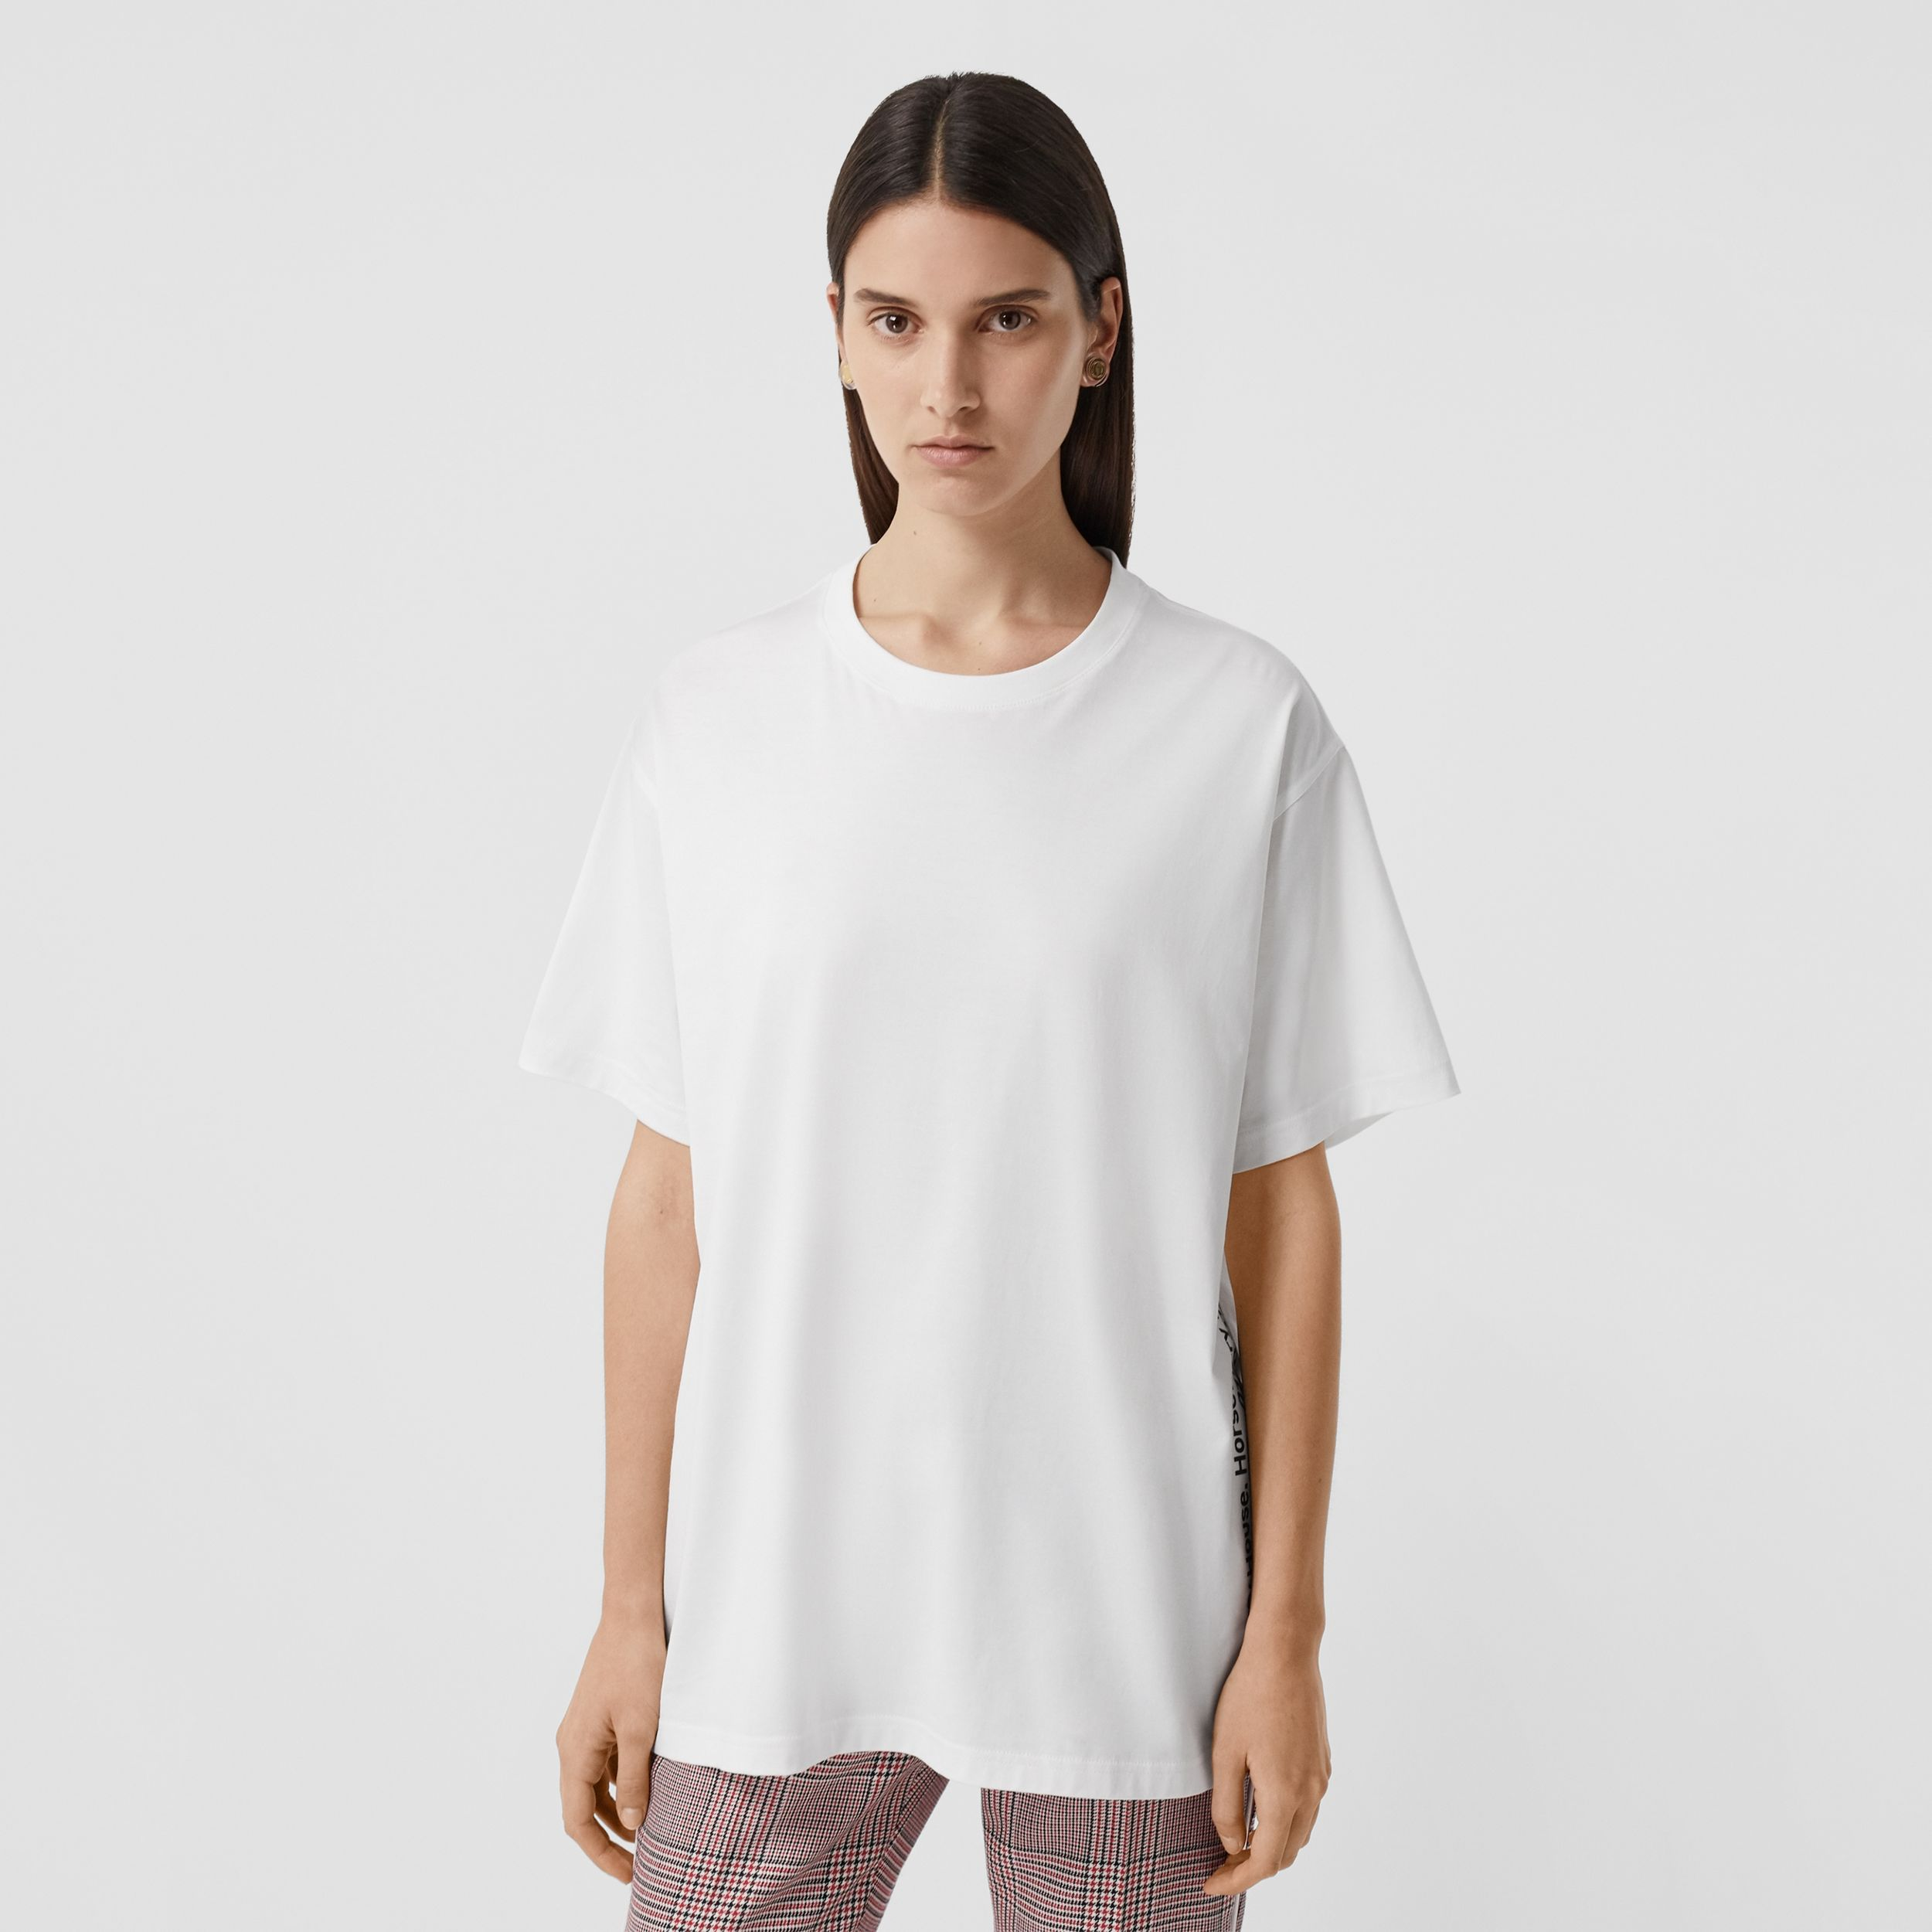 Coordinates Print Cotton Oversized T-shirt in White - Women | Burberry - 3